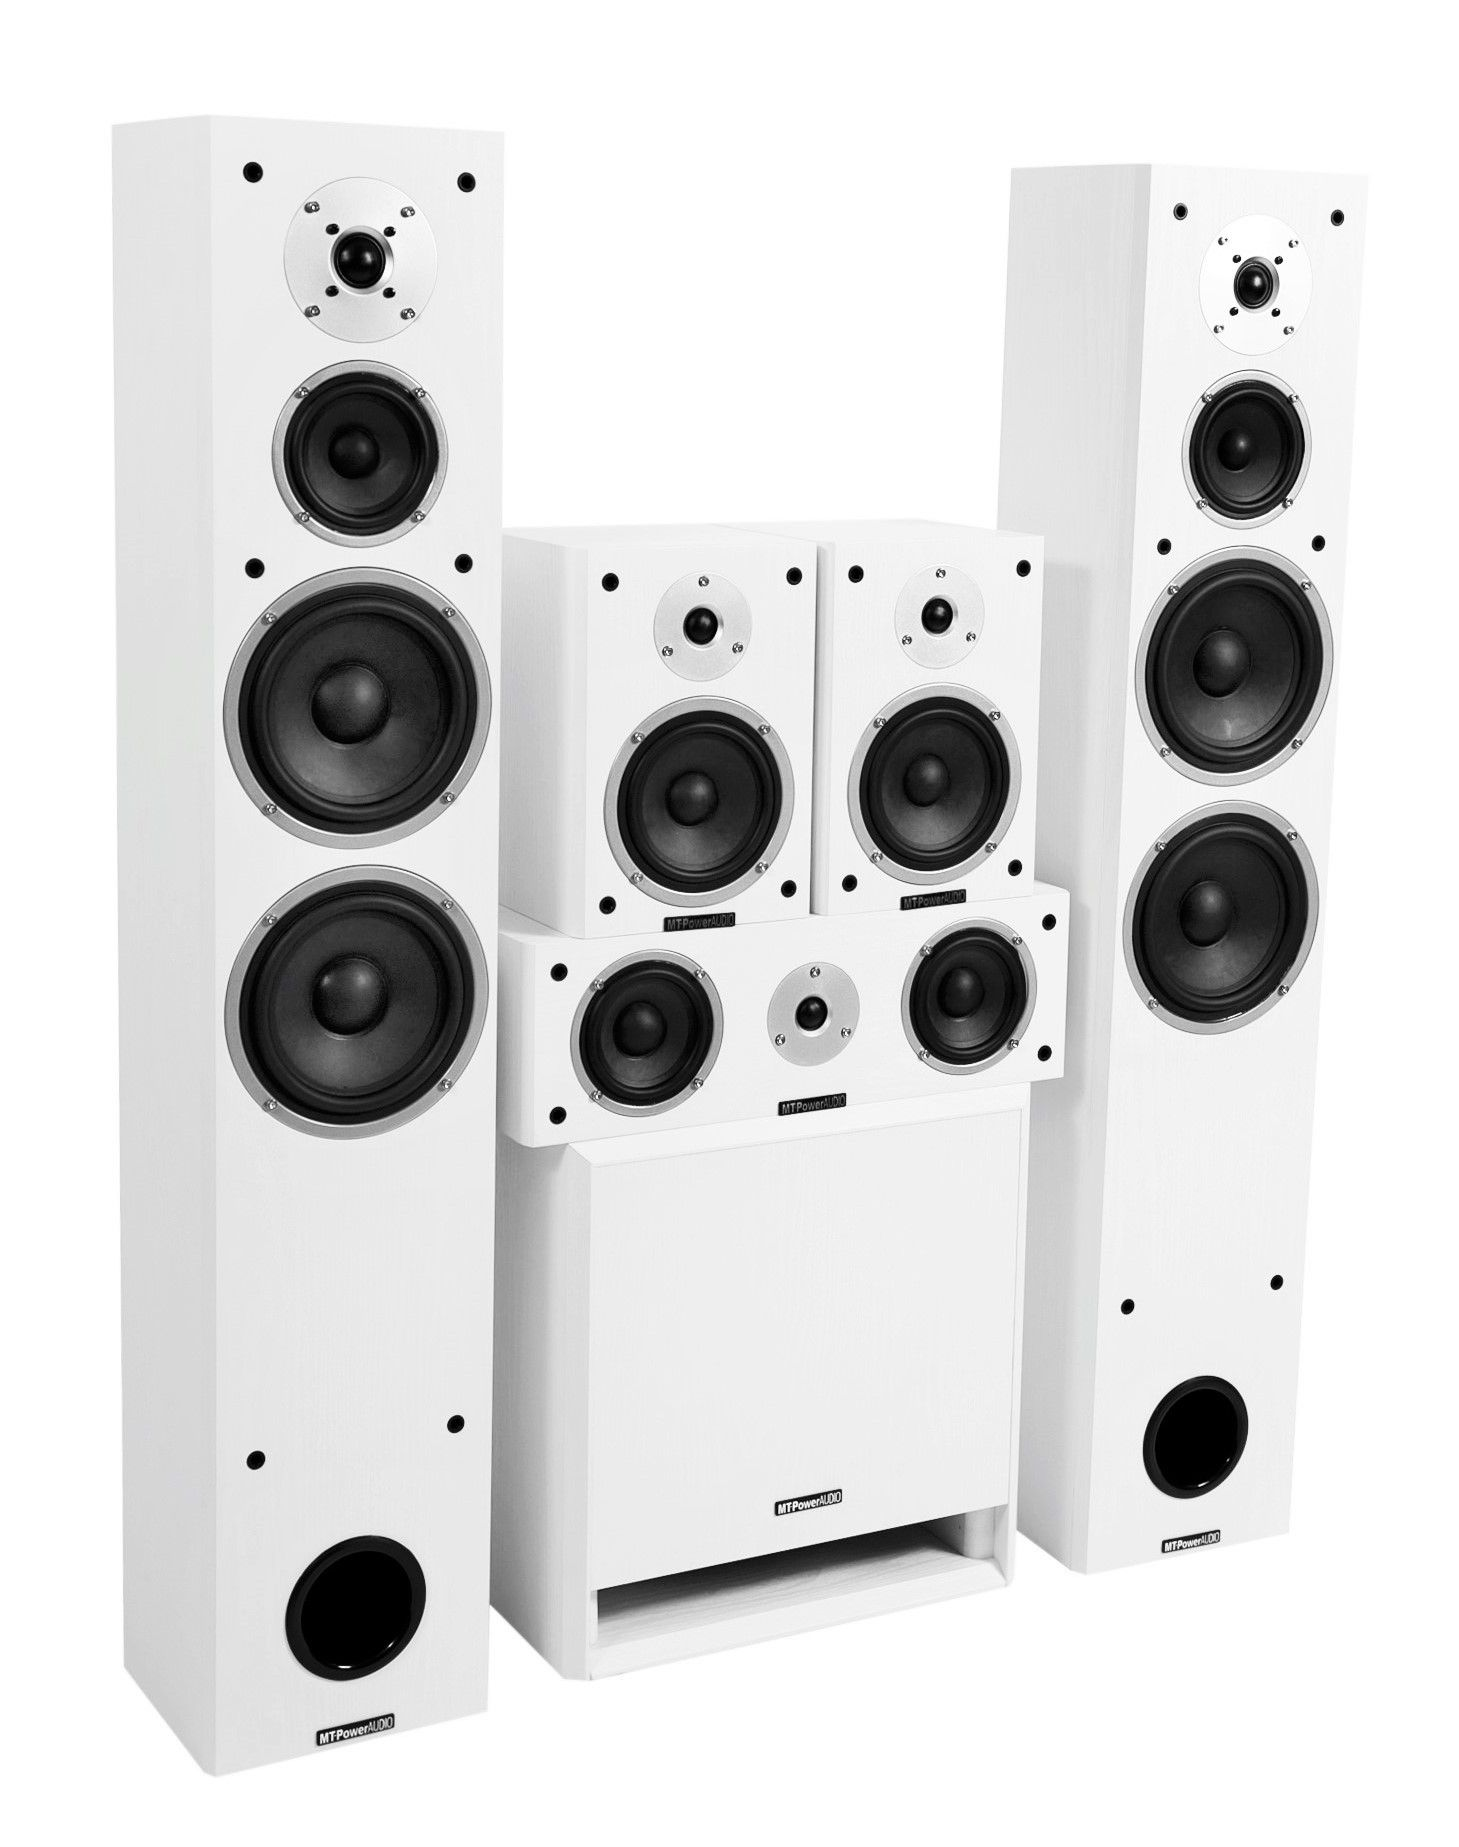 Комплект акустики MT-Power Performance XL white set 5.1